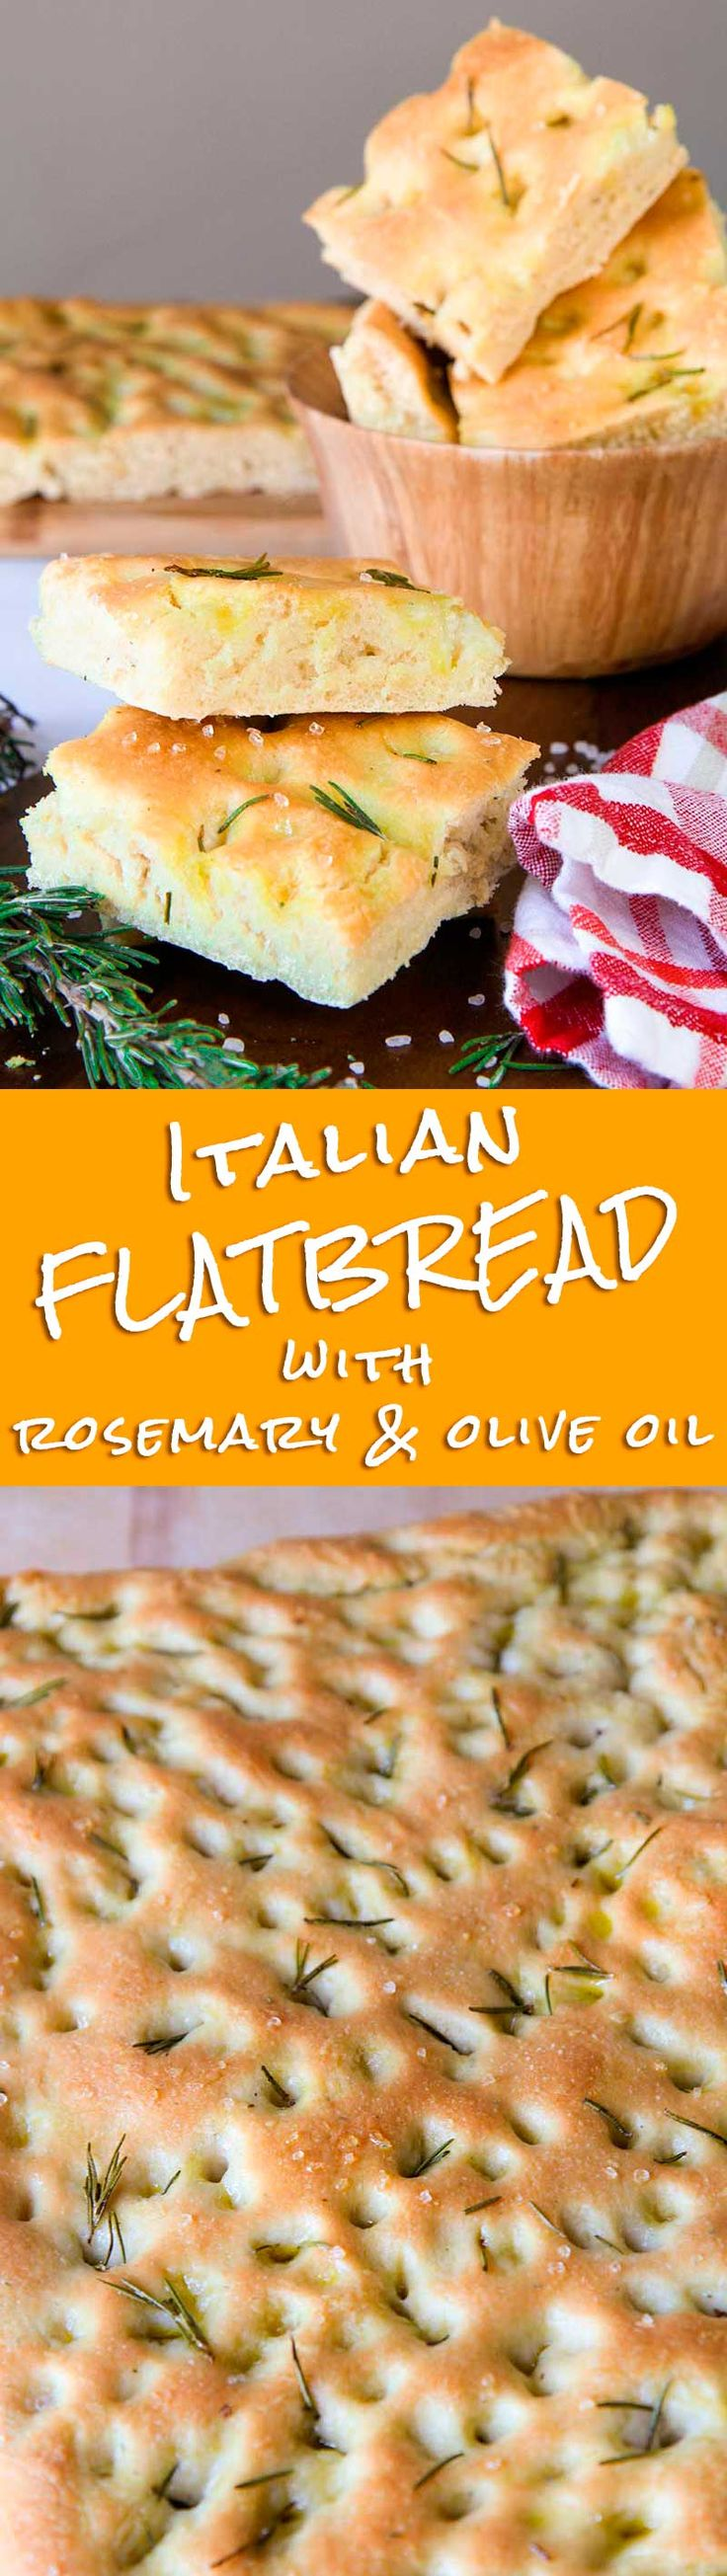 """ROSEMARY FLATBREAD with olive oil (Italian focaccia) - Rosemary flatbread is a Tuscan specialty! In Italy it is called """"focaccia"""" or """"schiacciata"""". Coarse salt is essential to obtain the characteristic taste and texture. The Italian tradition requires adbundant olive oil. For this reason the quality of the oil is essential to obtain a great """"schiacciata"""". I love load my rosemary flatbread with cheese, baked vegetables or cured meats, but it is delicious simply plain as well! - pizza, recipe"""